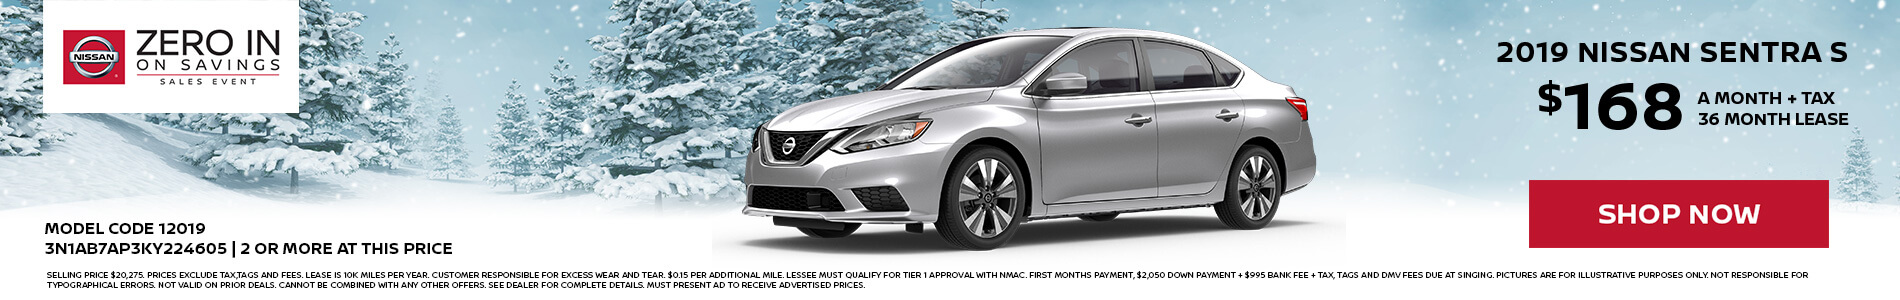 Nissan Sentra $168 Lease